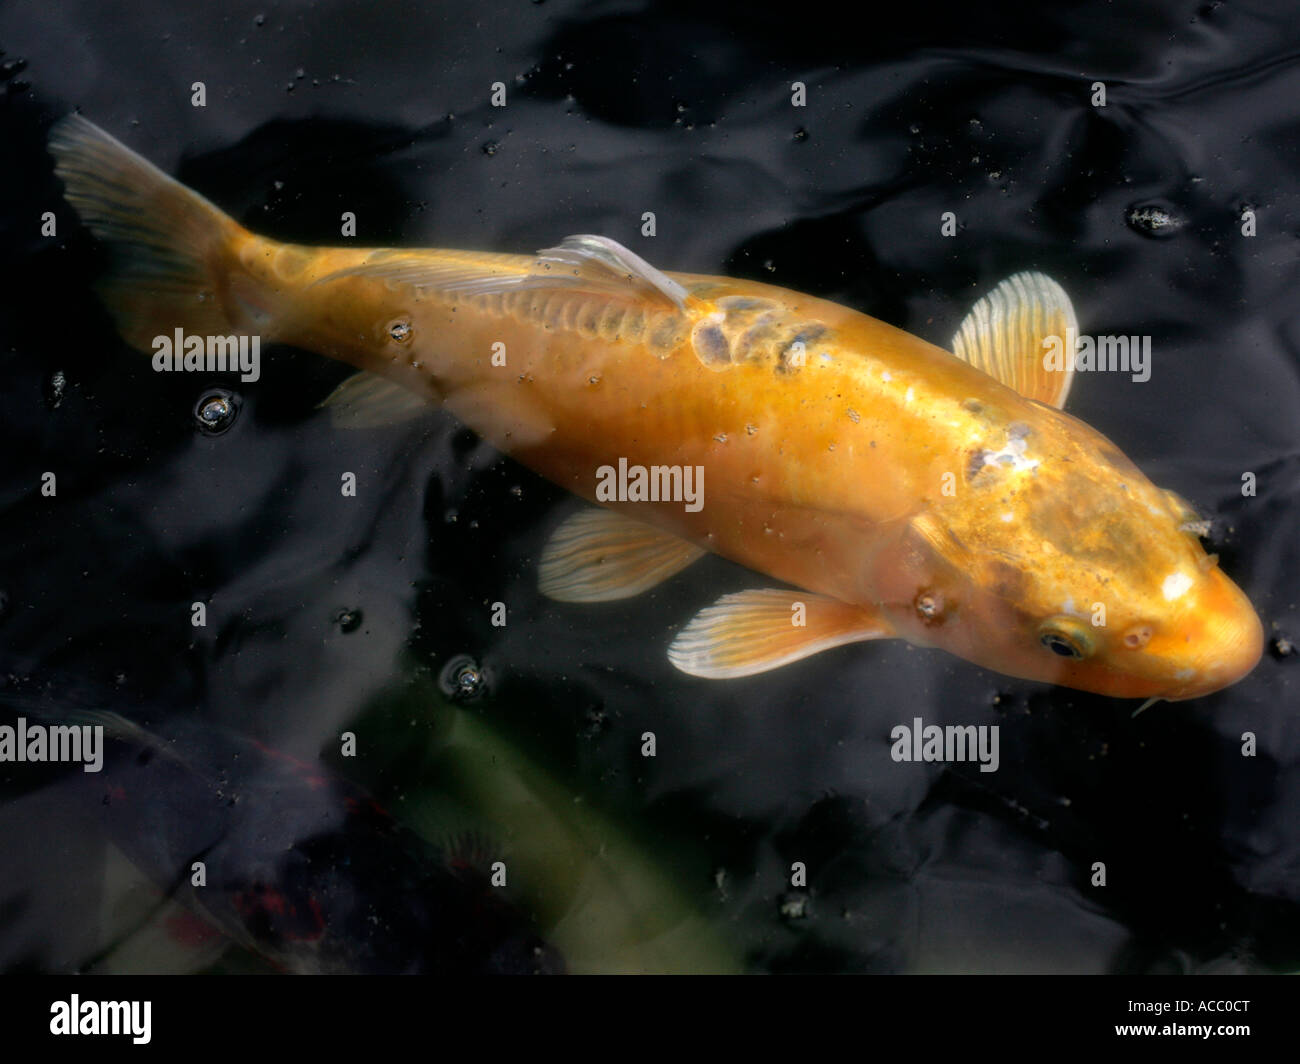 A Lucky Gold Koi Carp Underwater Stock Photo Royalty Free